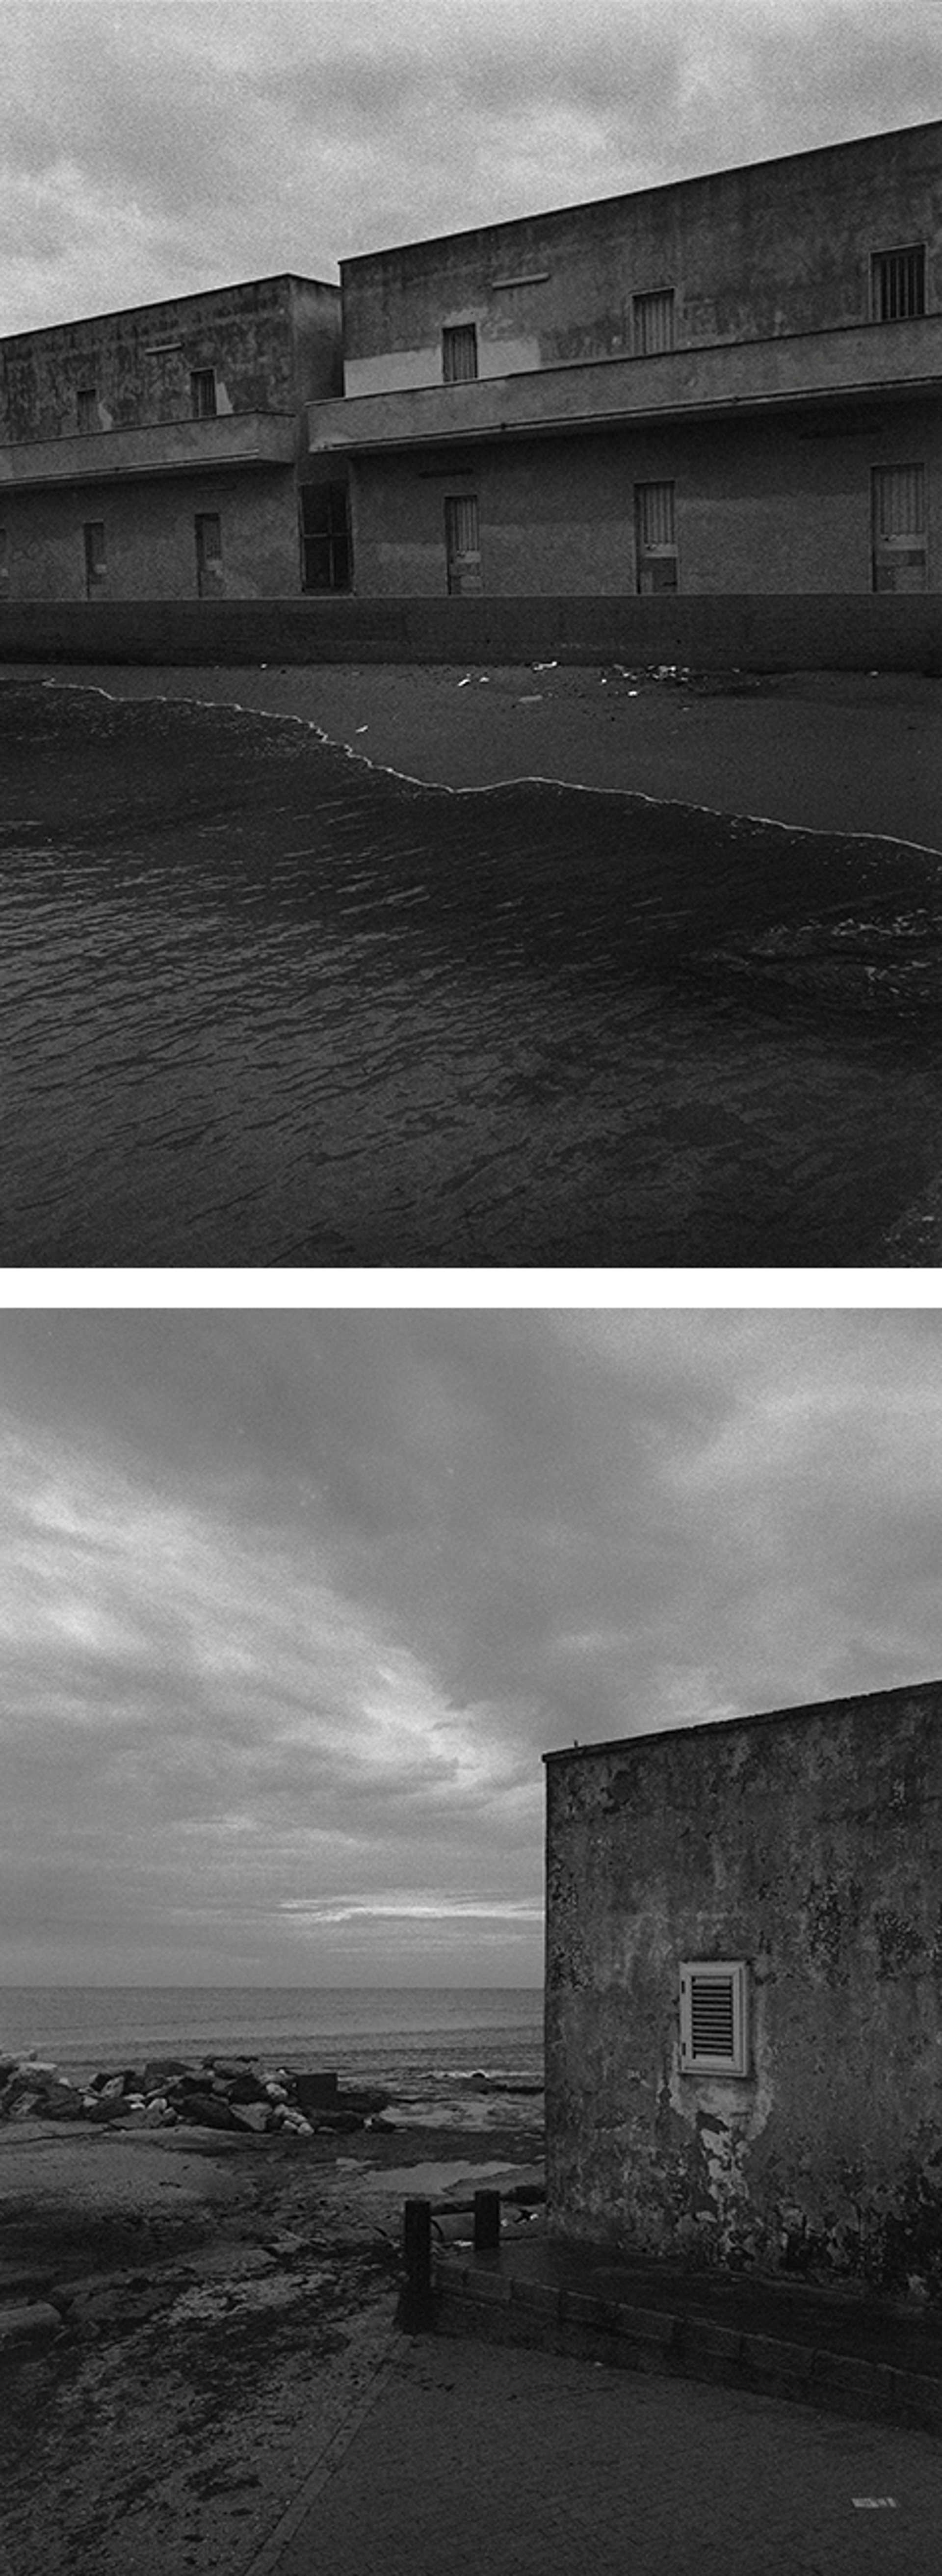 A photographic journey along Europe's coasts, which migrants long for.